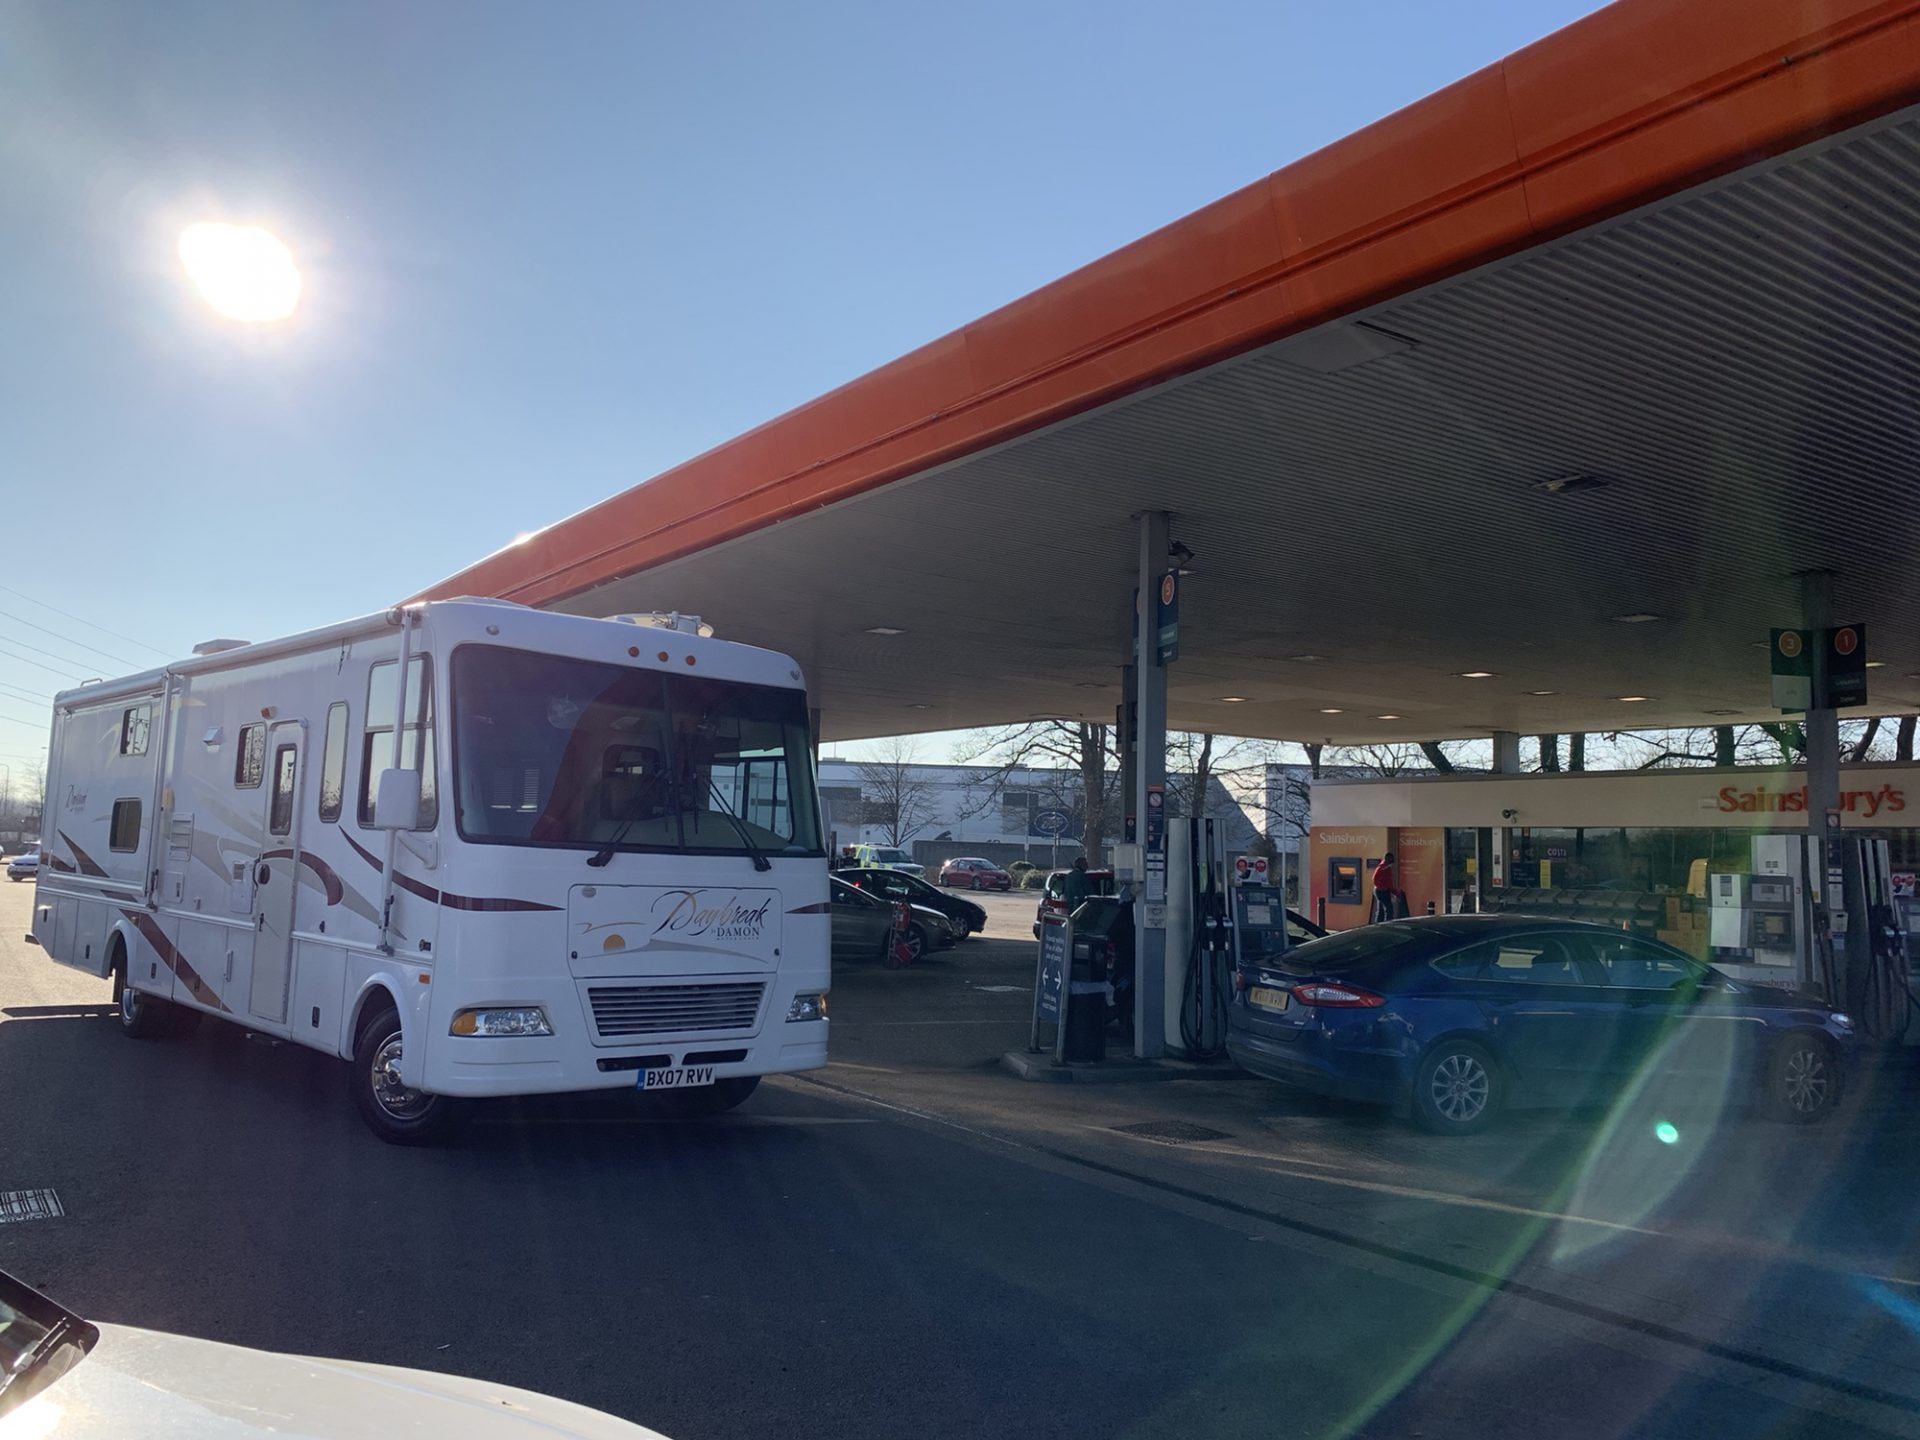 Our RV is blocking several fuel pumps while waiting to get onto the LPG pump we need